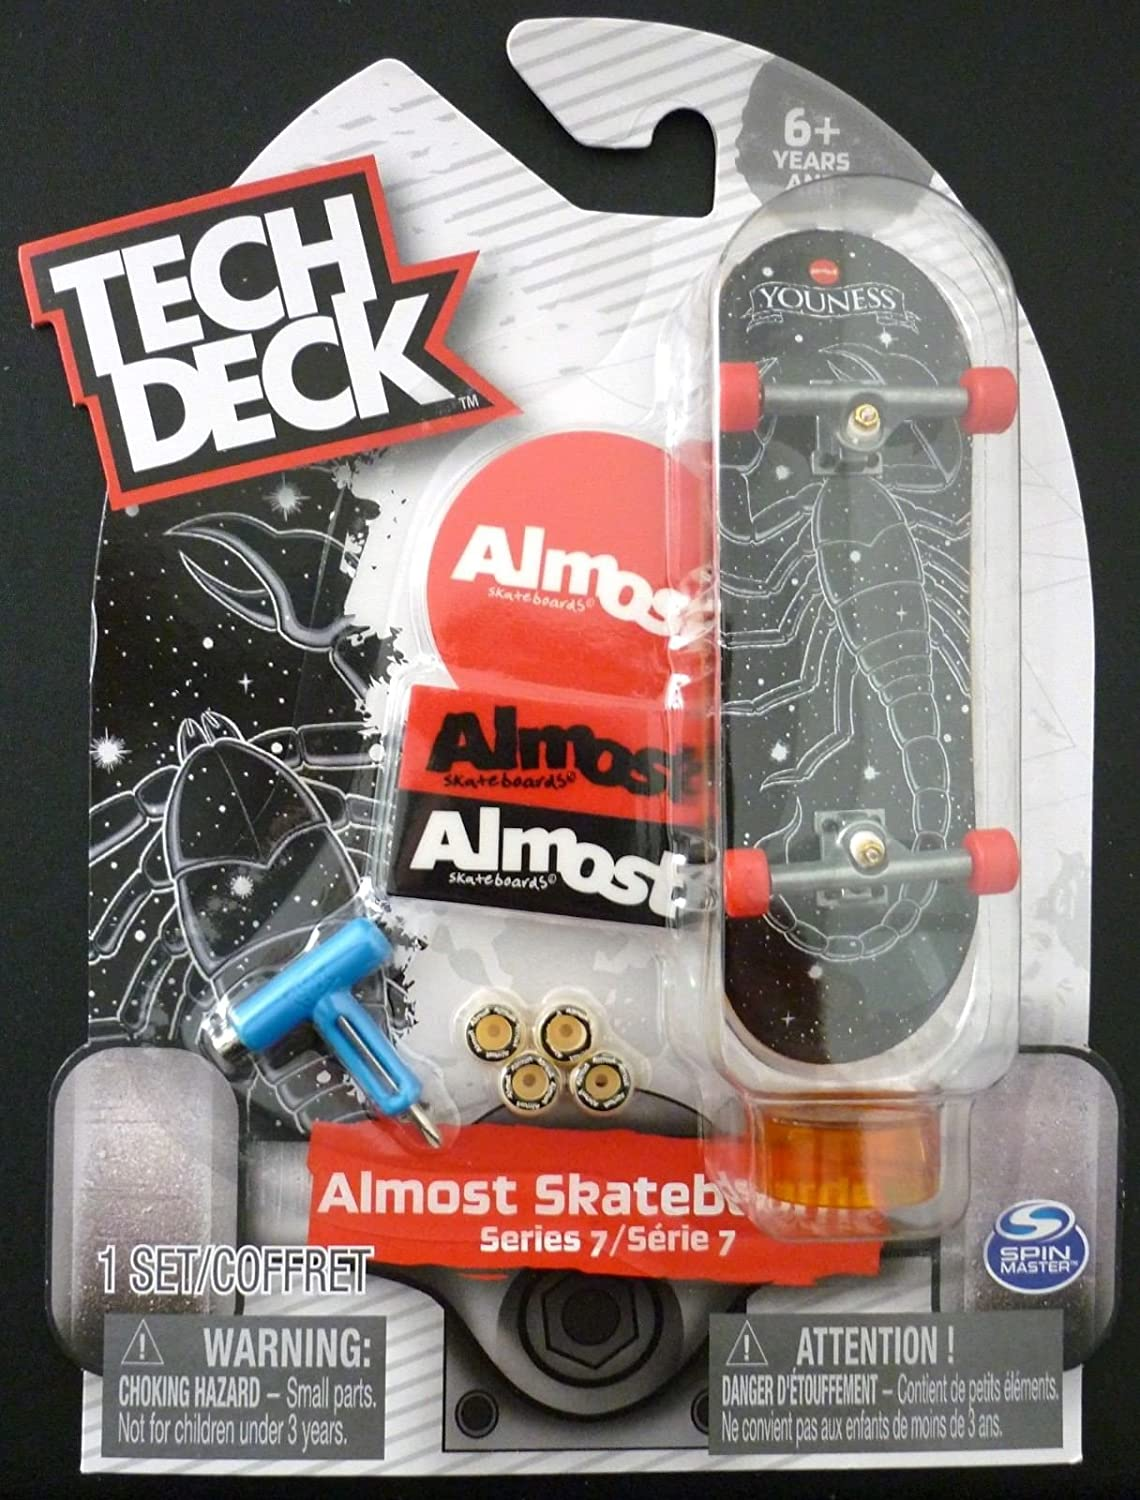 Tech Deck ALMOST Skateboard Fingerboard 96mm Series 7 with Stickers